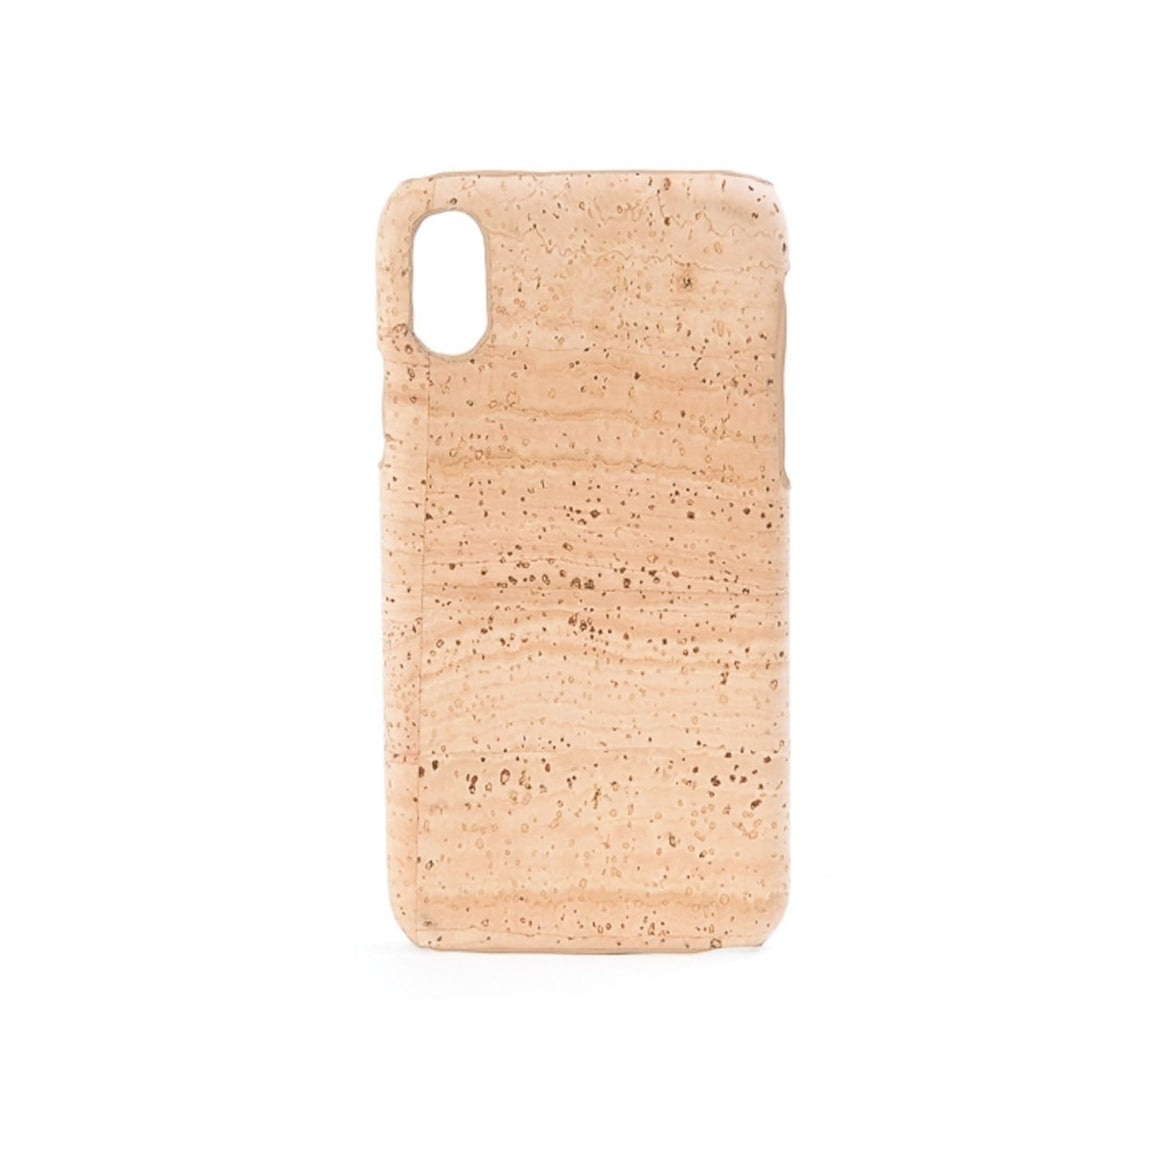 Cork iPhone Case - Naturally Anti-Microbial Hypoallergenic Sustainable Eco-Friendly Cork